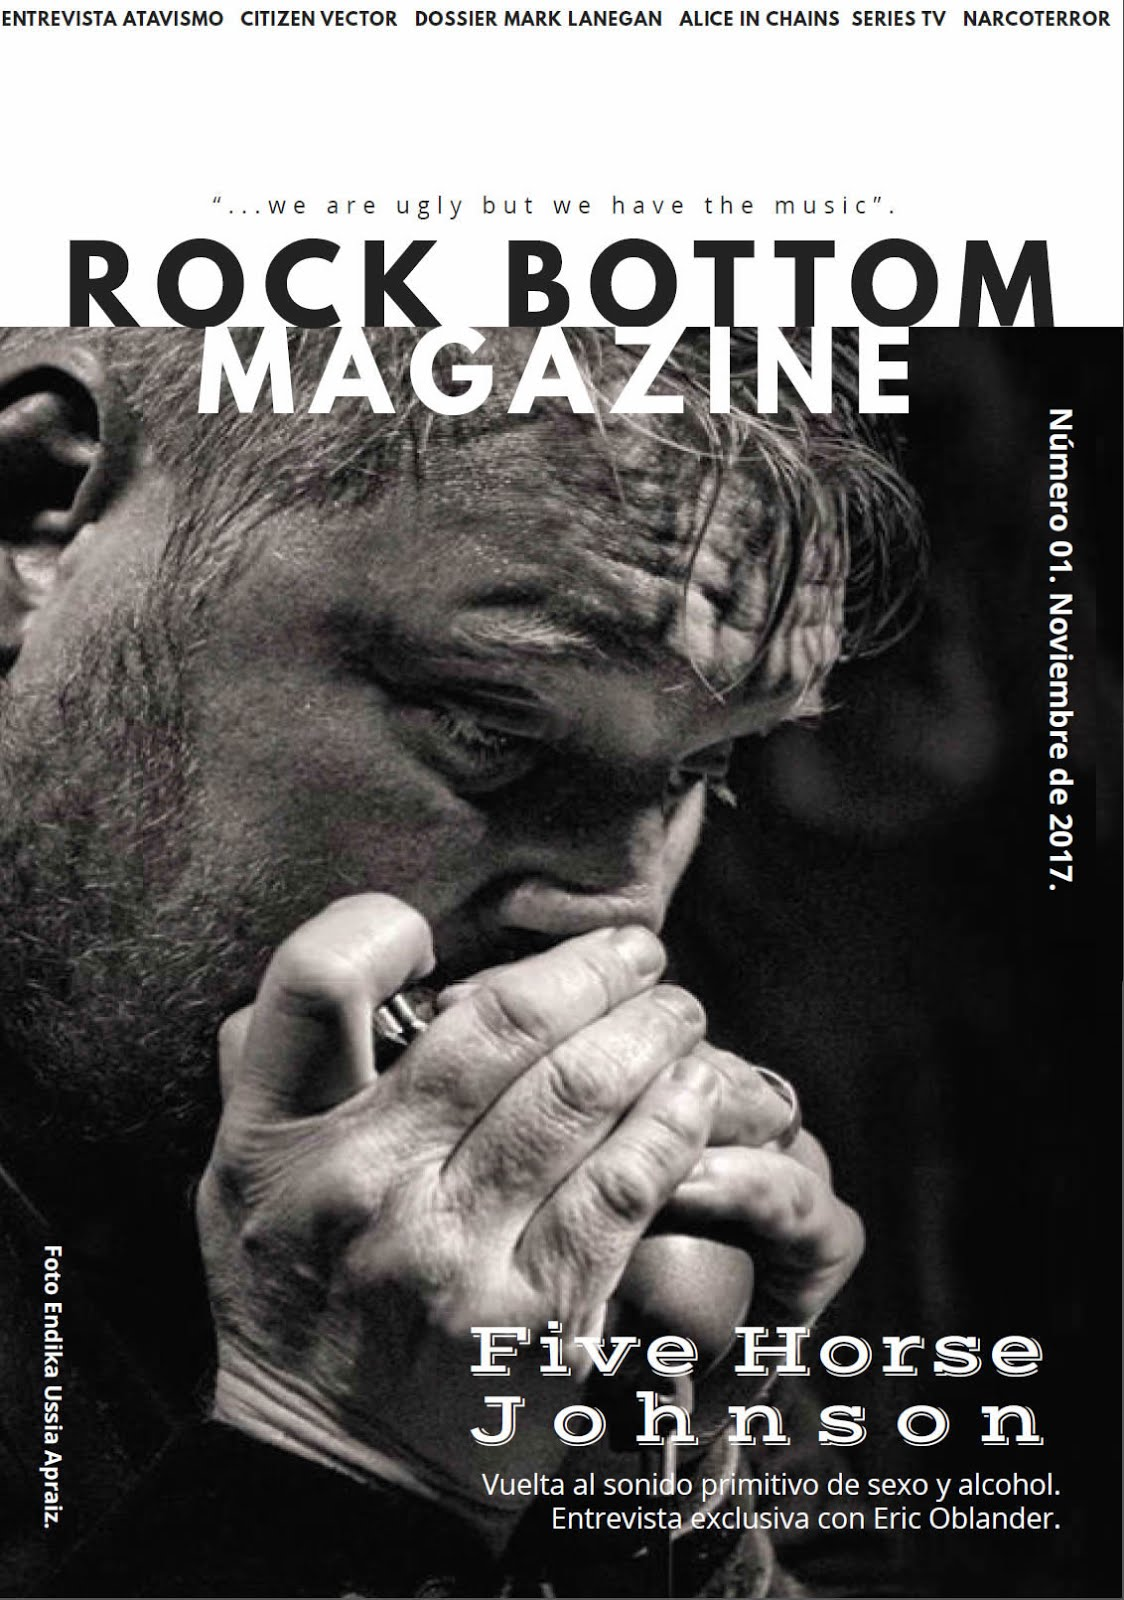 Revista digital gratuita. Rock Bottom Magazine.